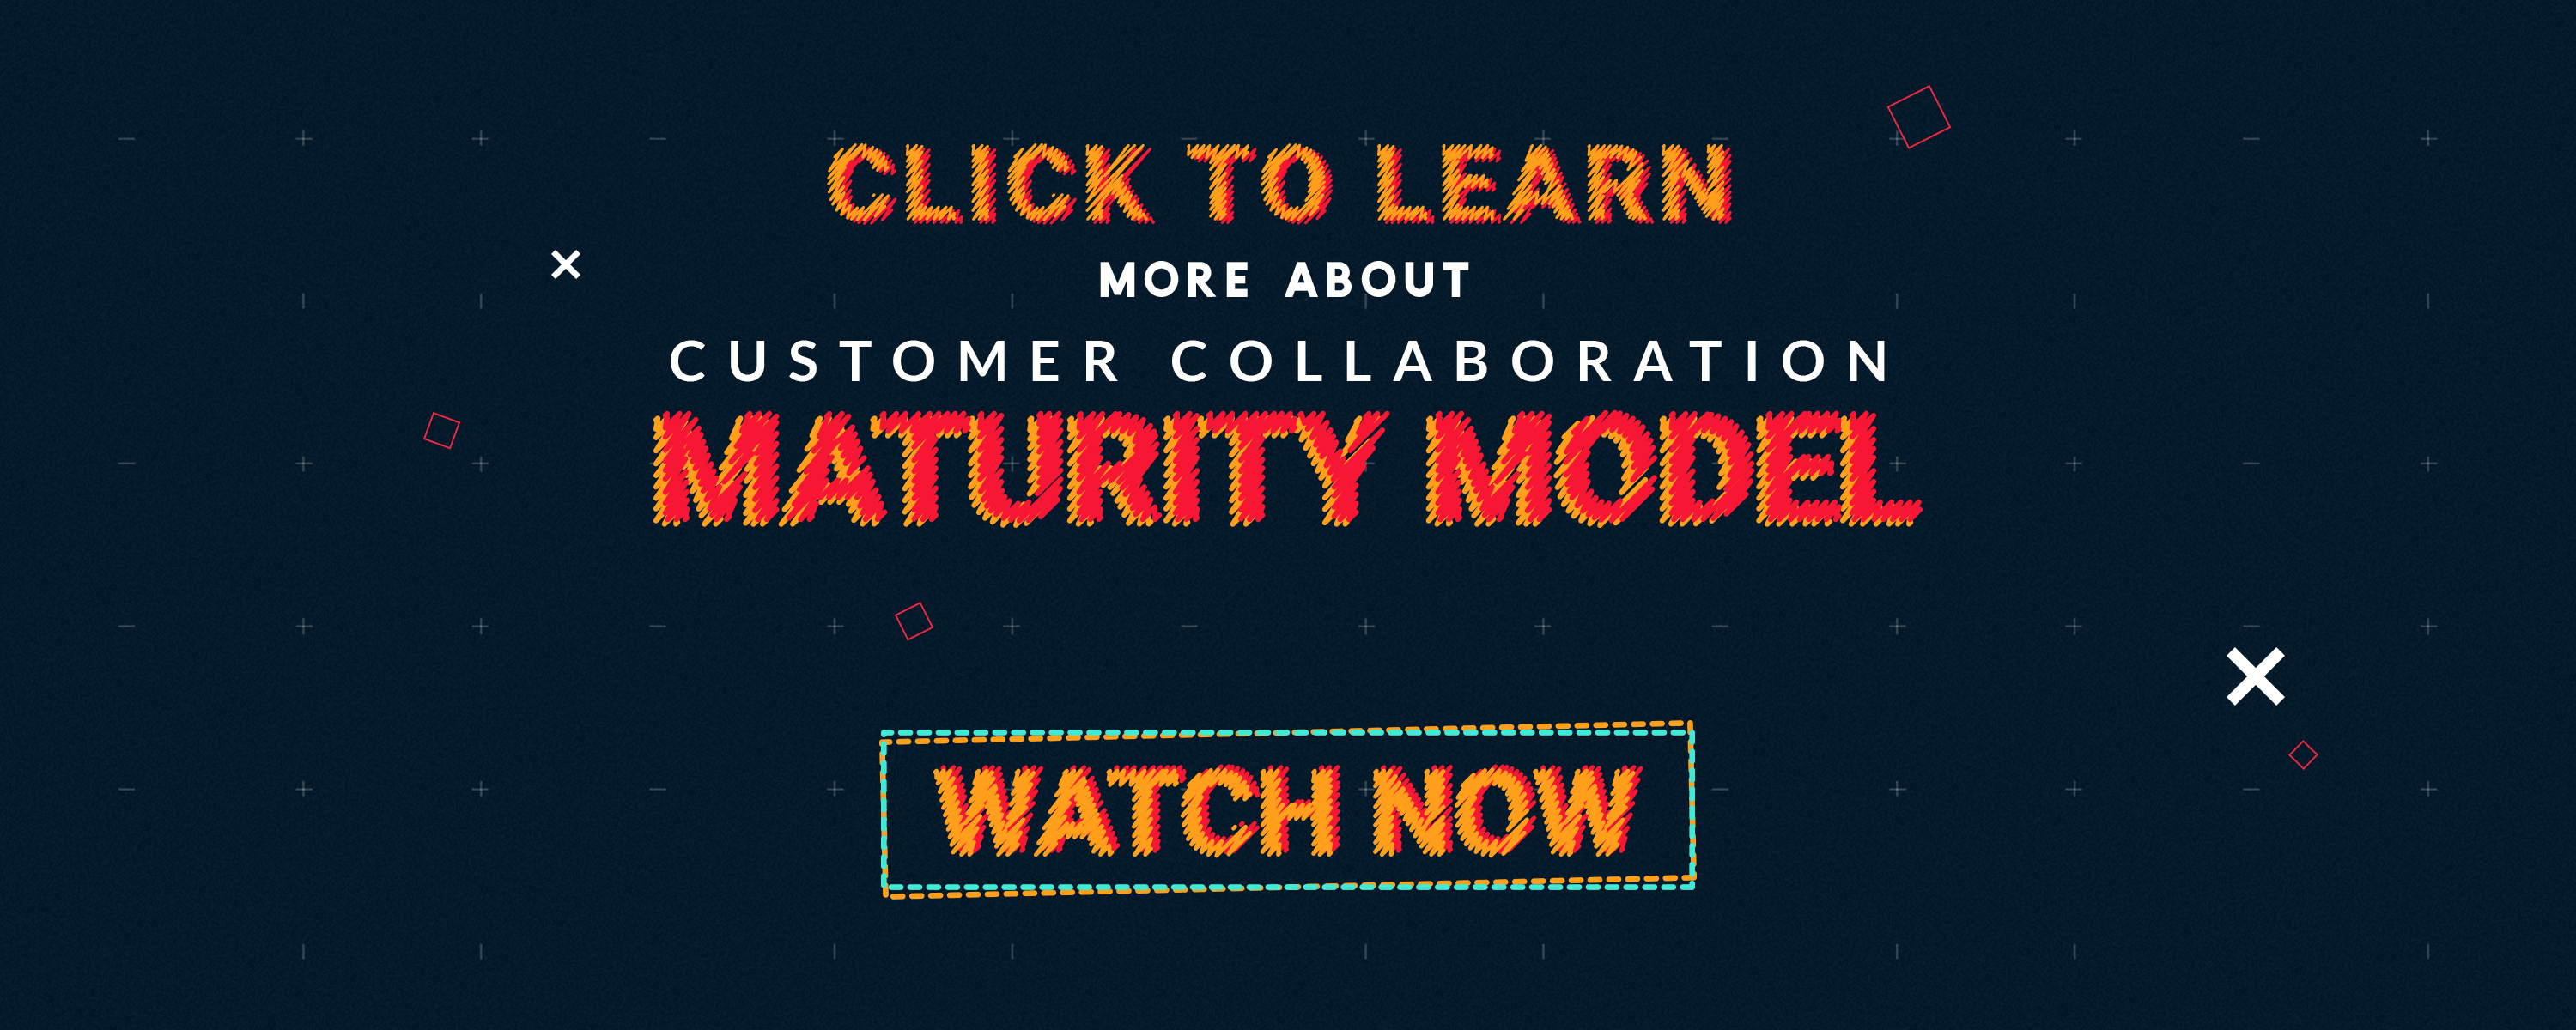 Customer Collaboration Maturity Model CTA